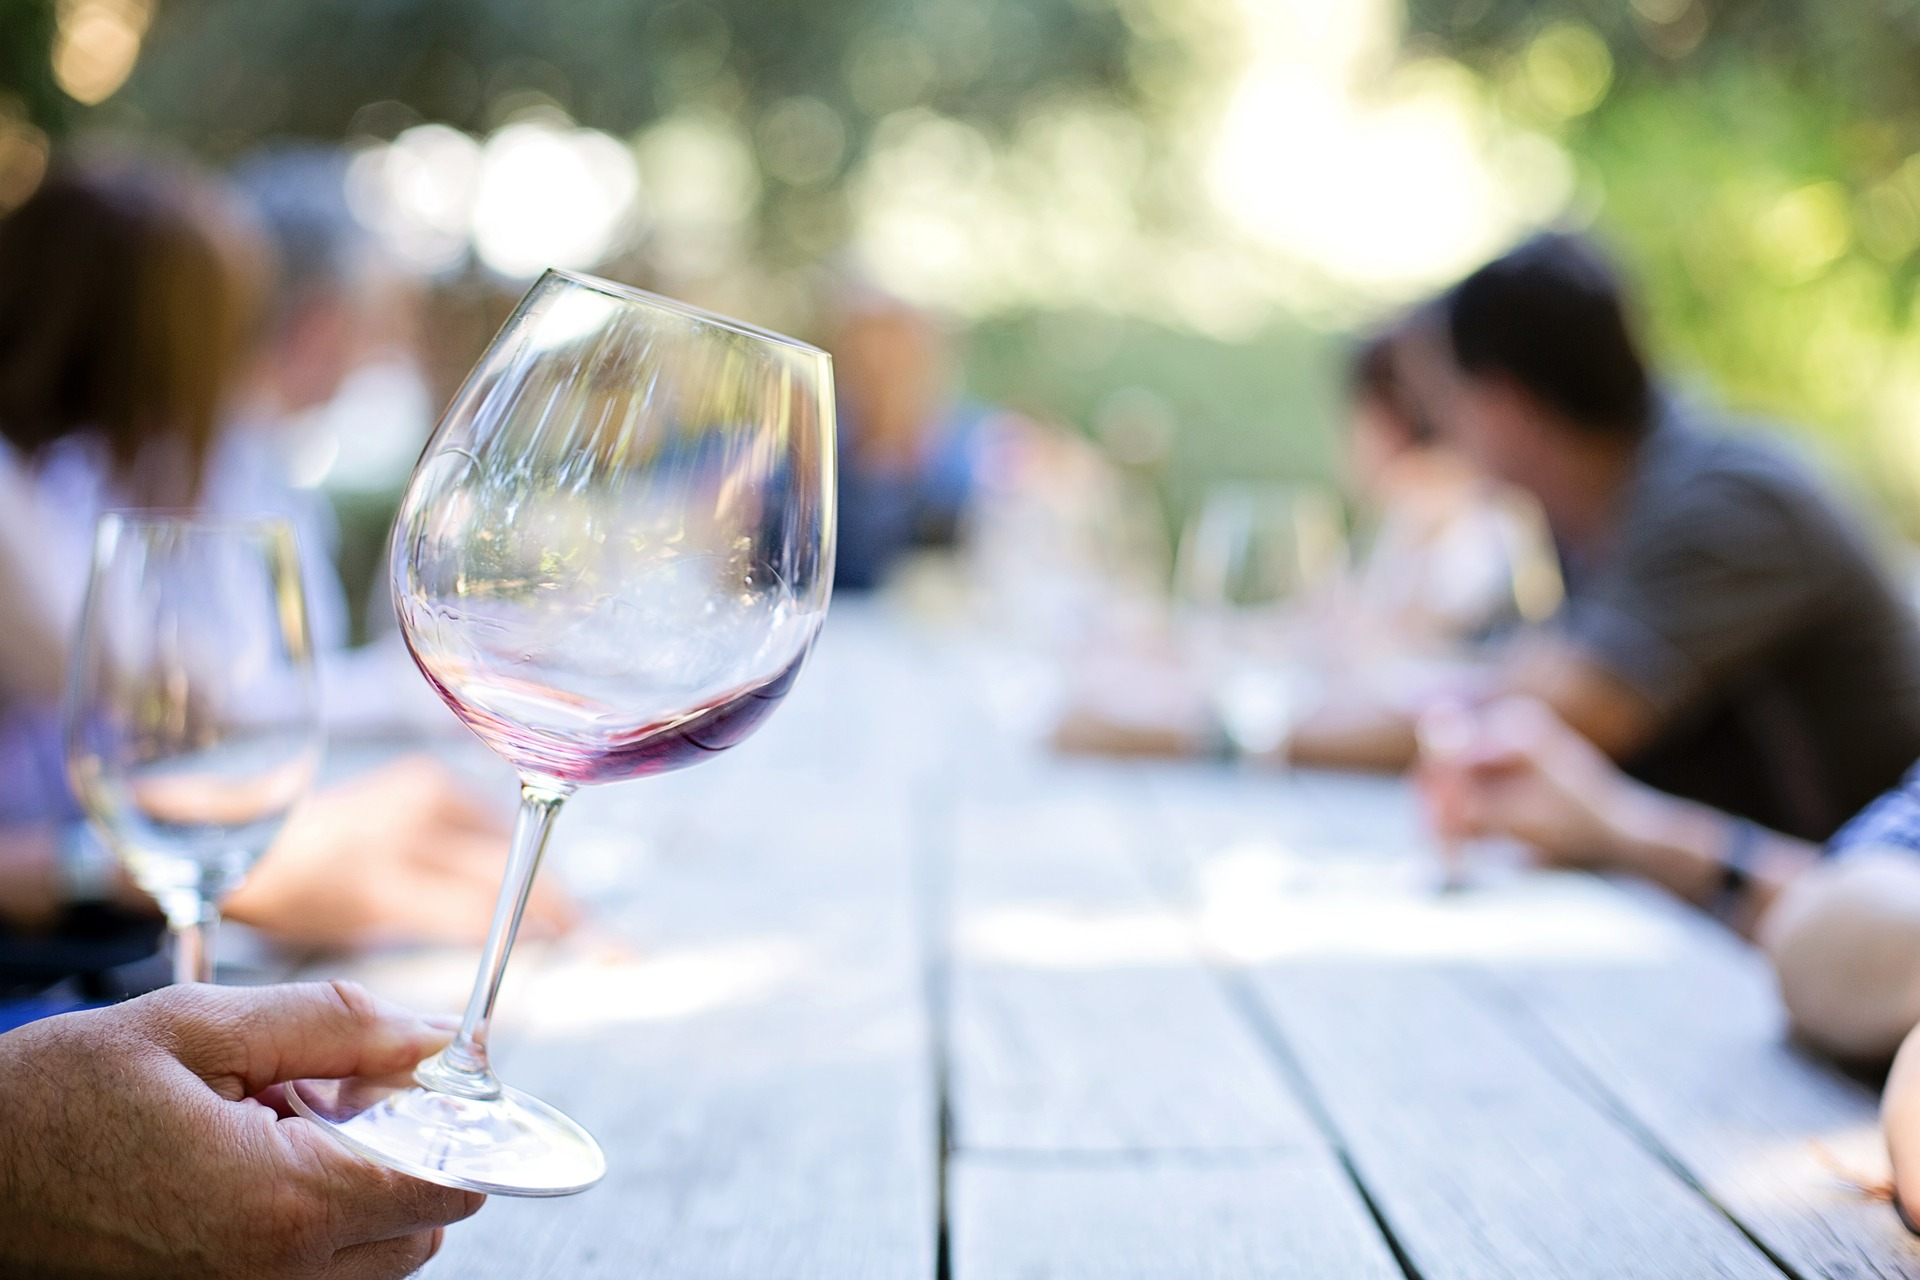 Alcohol addiction is exceptionally difficult, as alcohol has become normalised in many societies around the world.